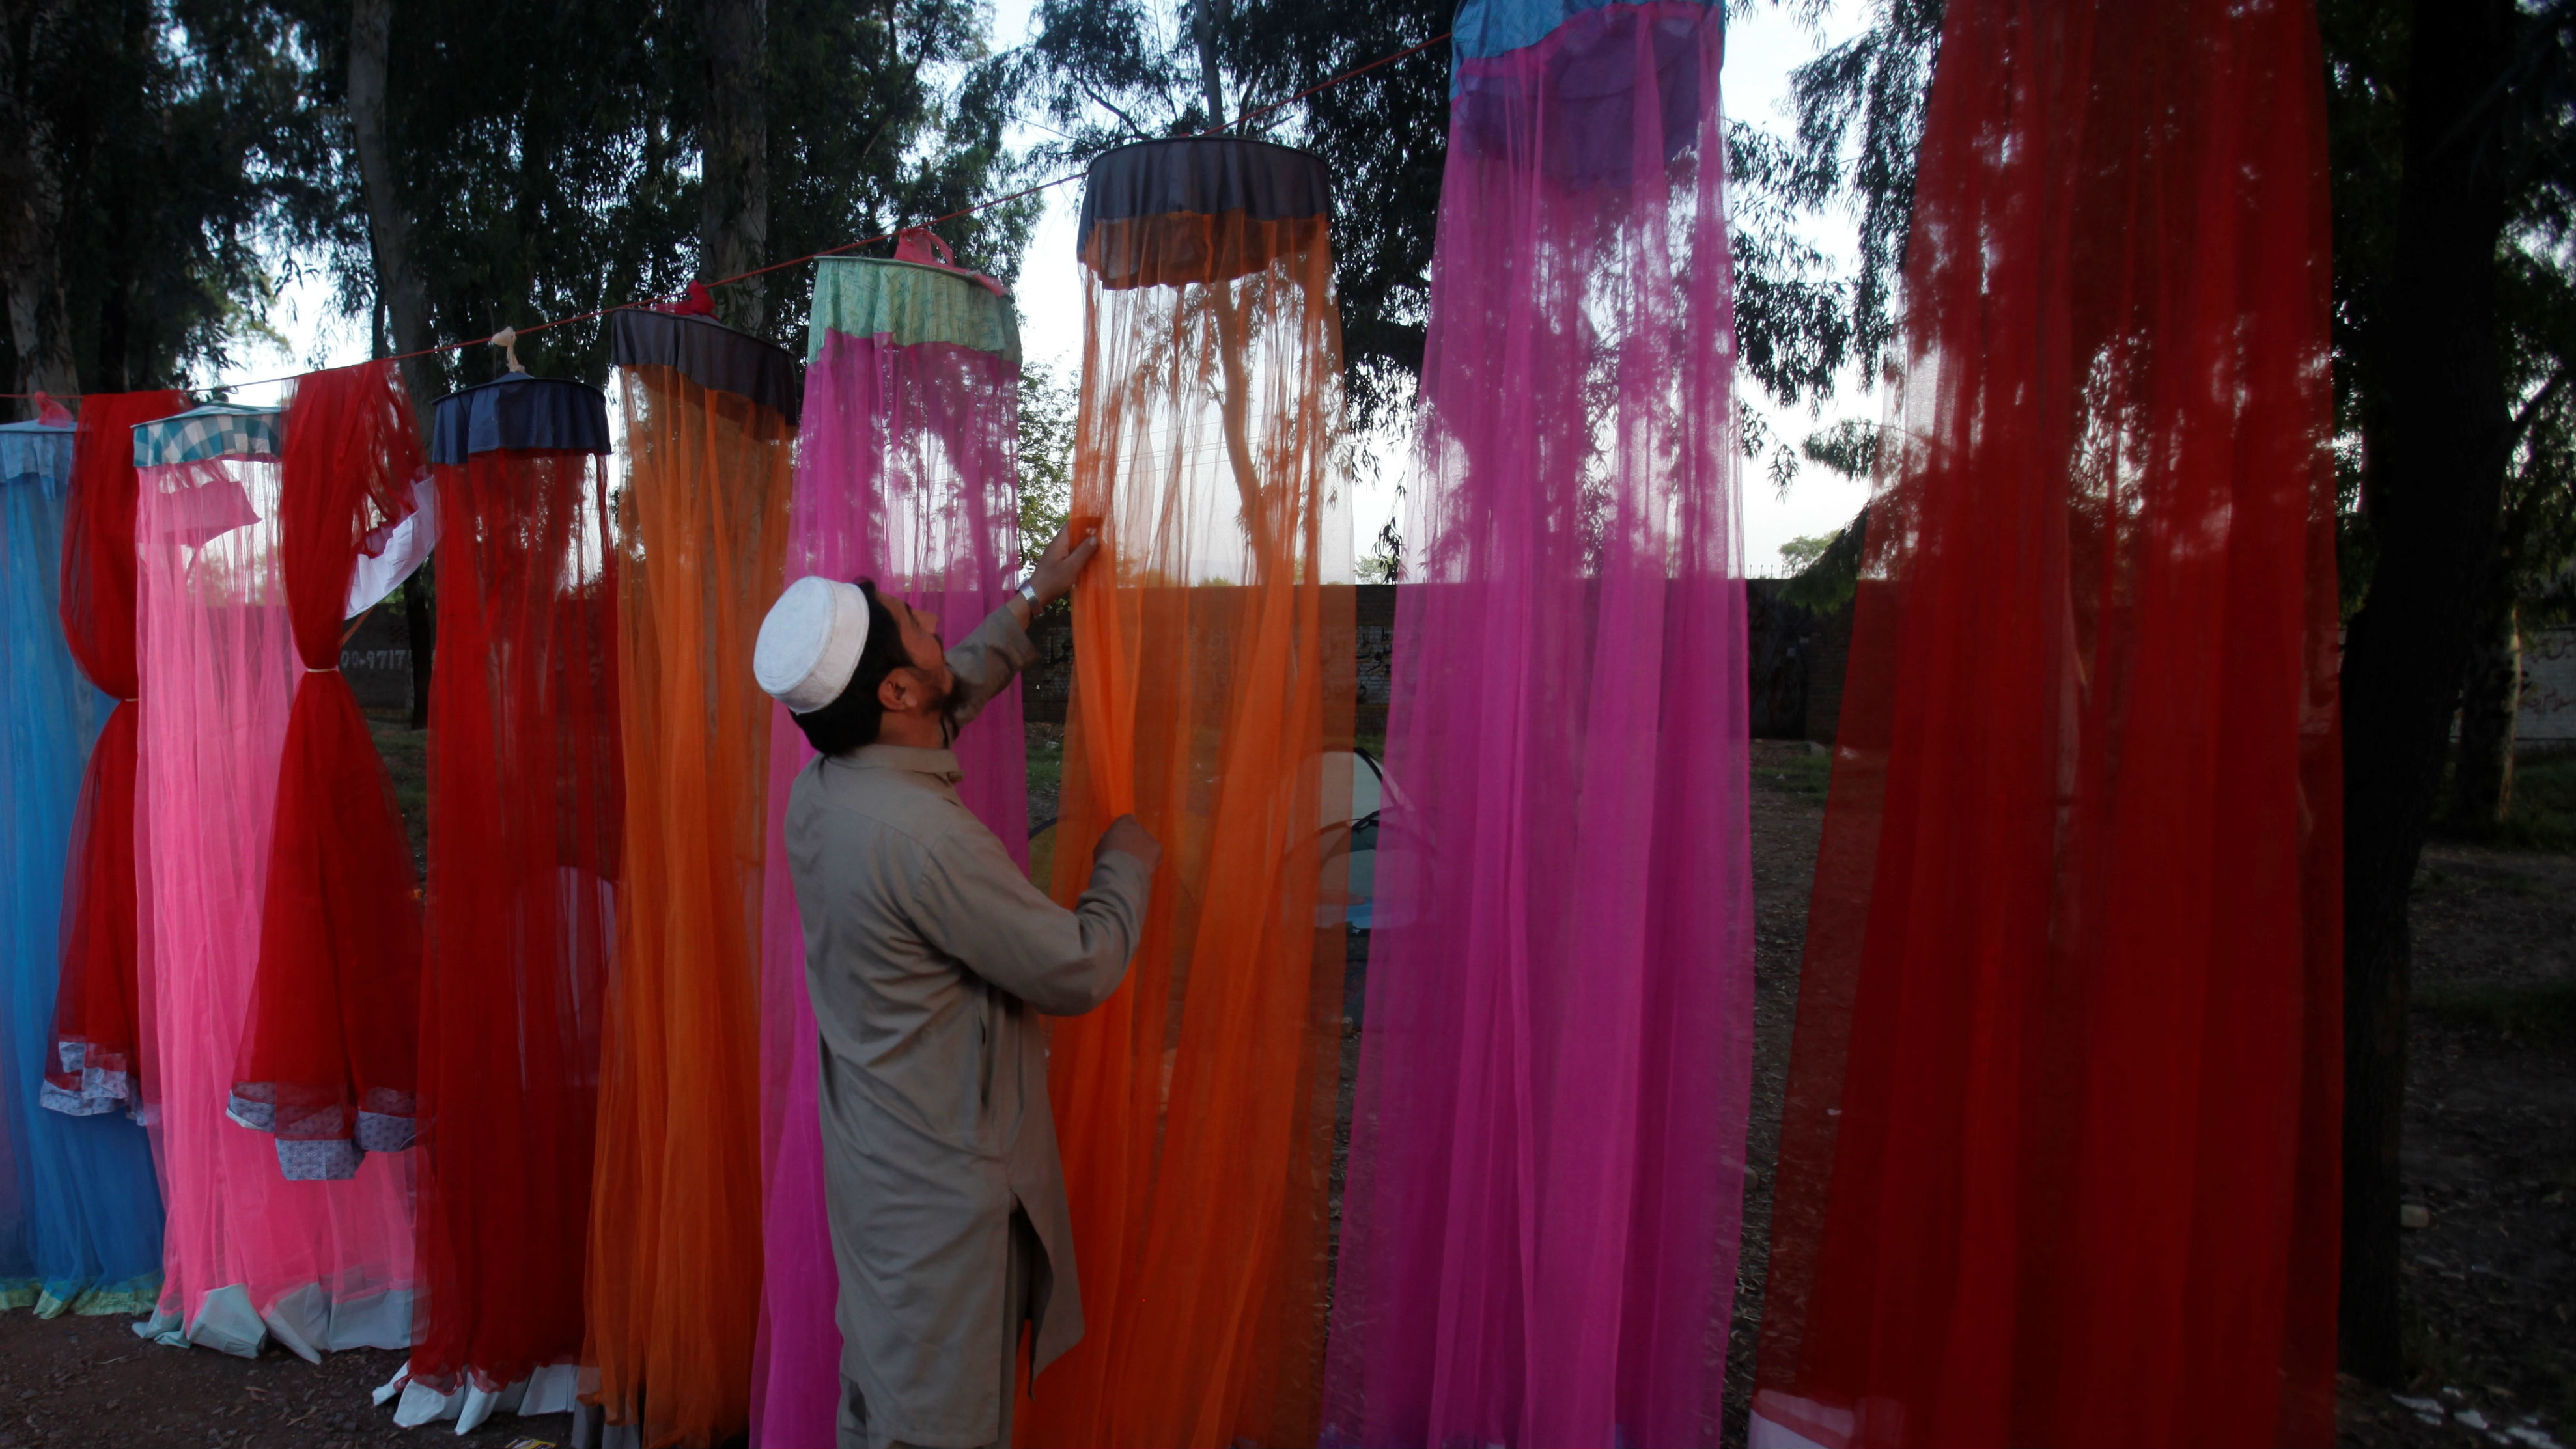 Colorful mosquito nets hang from